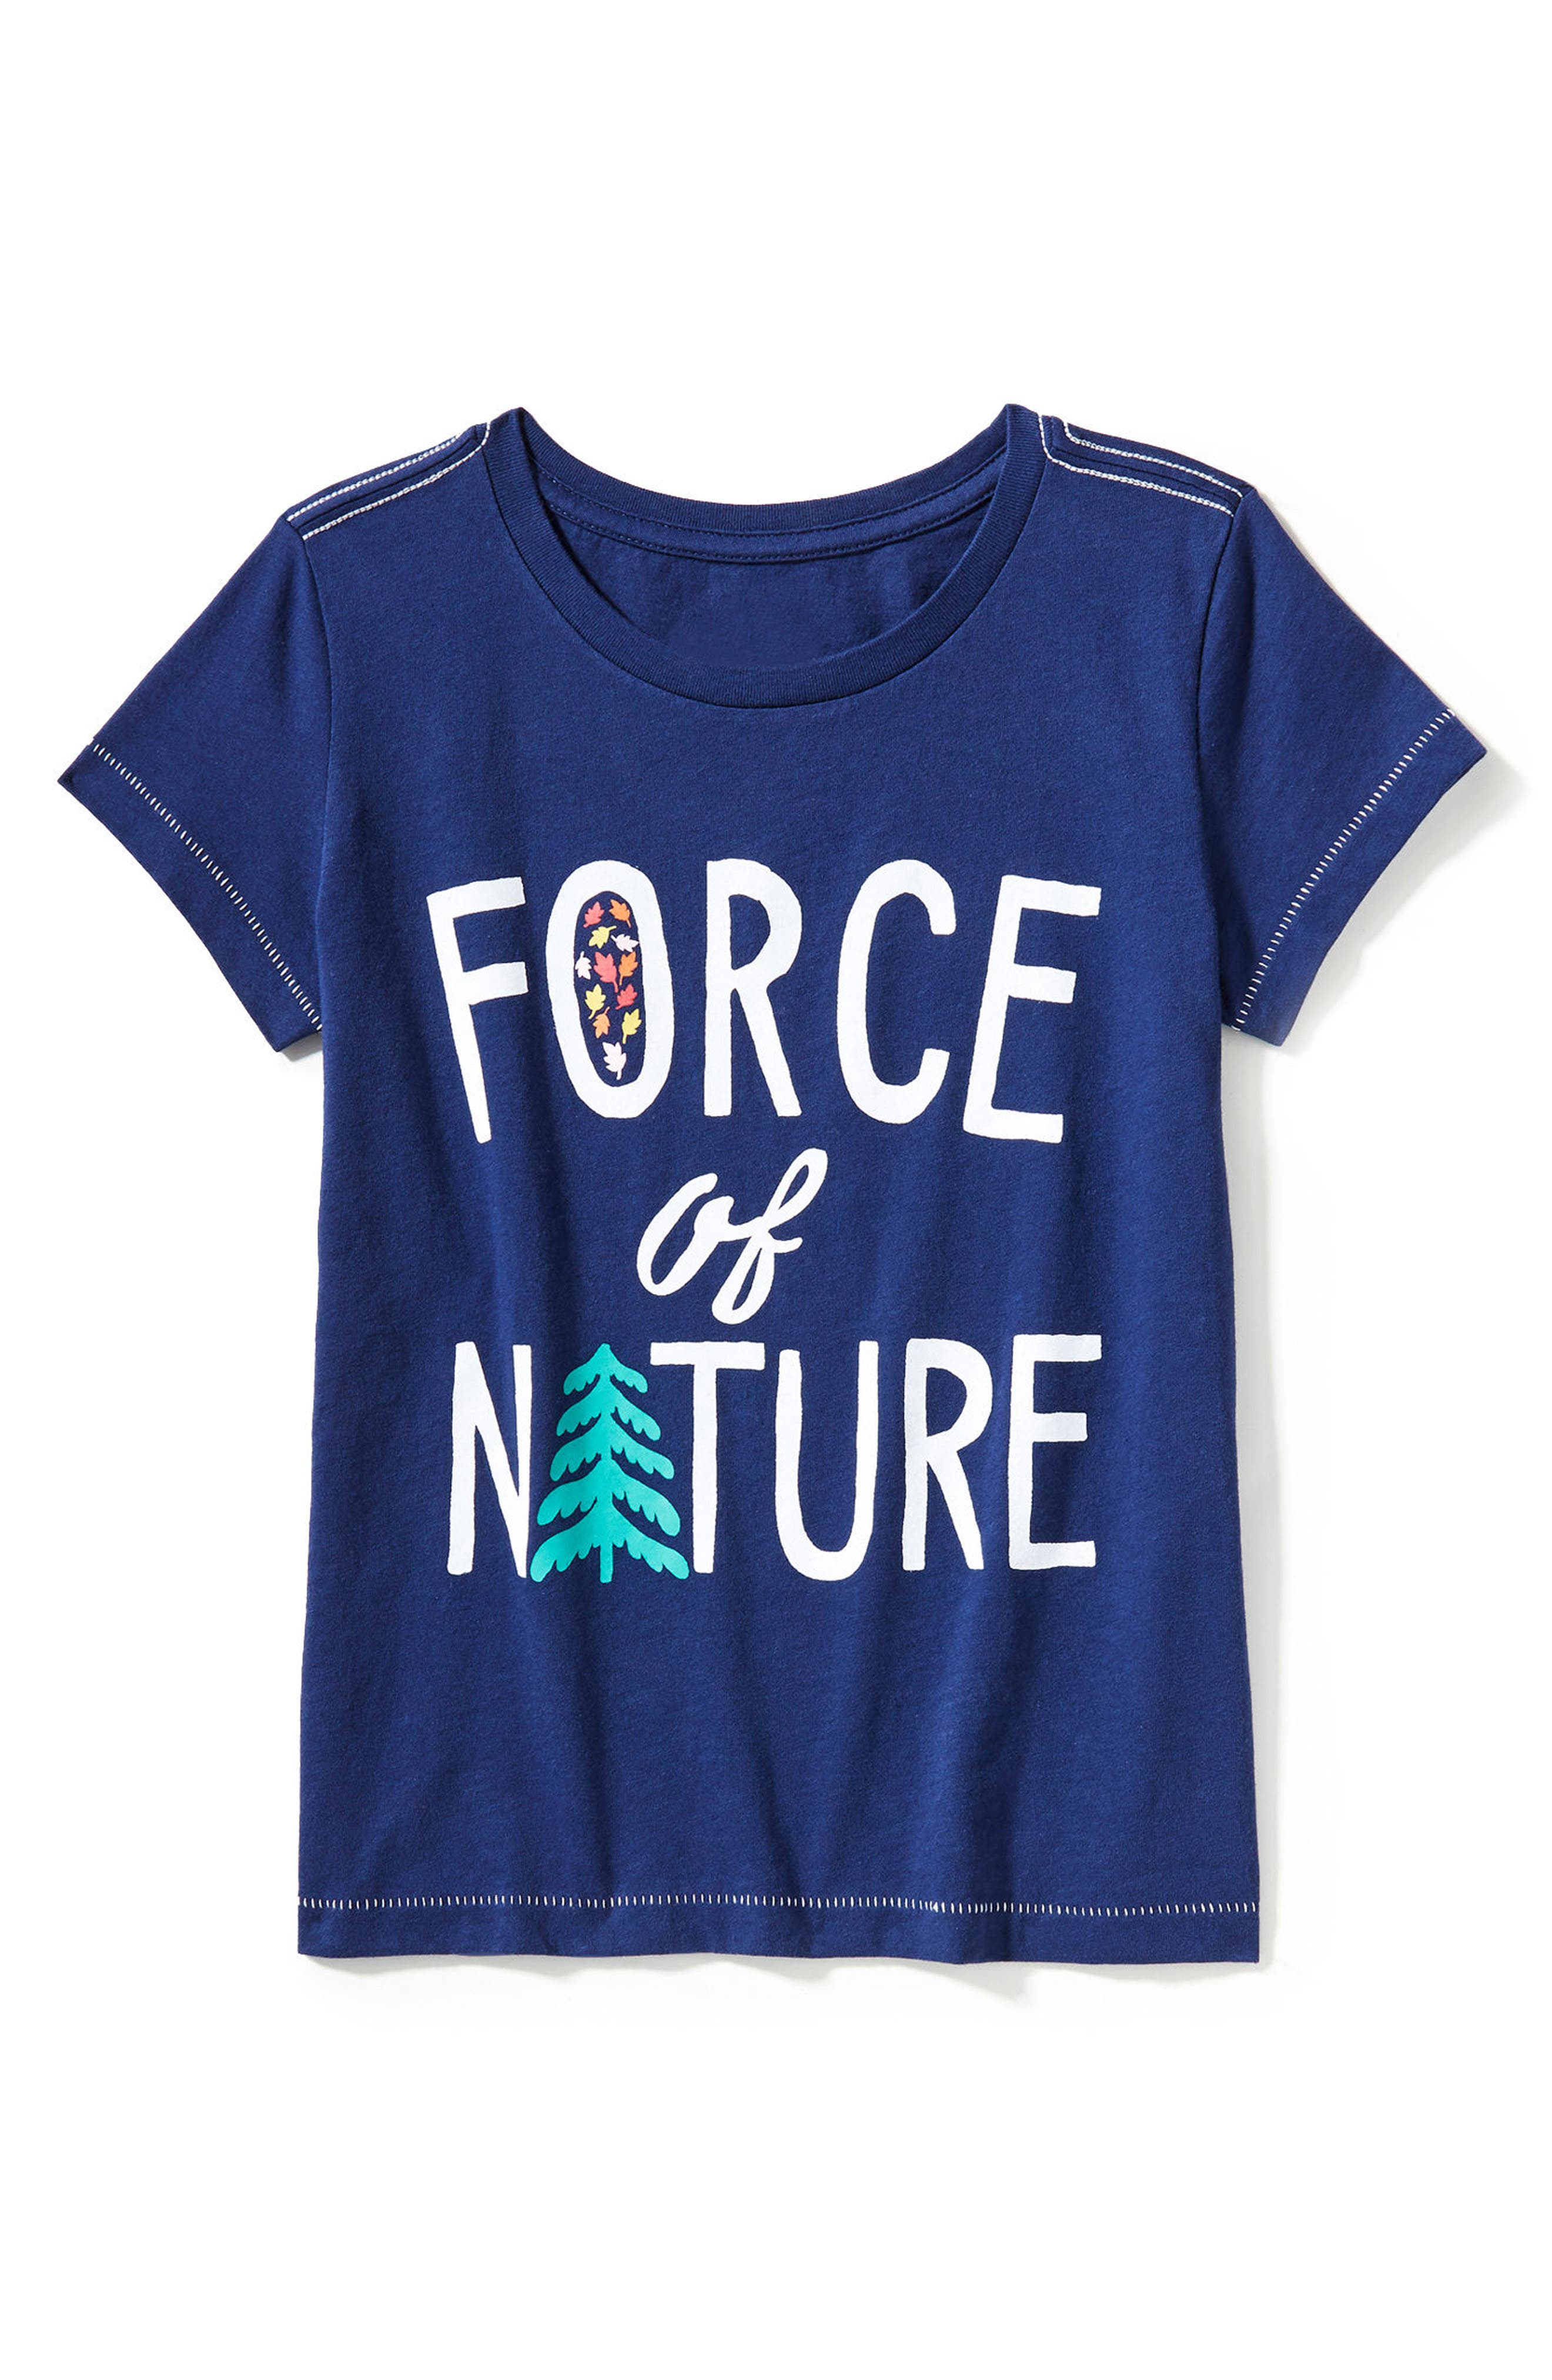 Force of Nature Graphic Tee,                             Alternate thumbnail 2, color,                             410